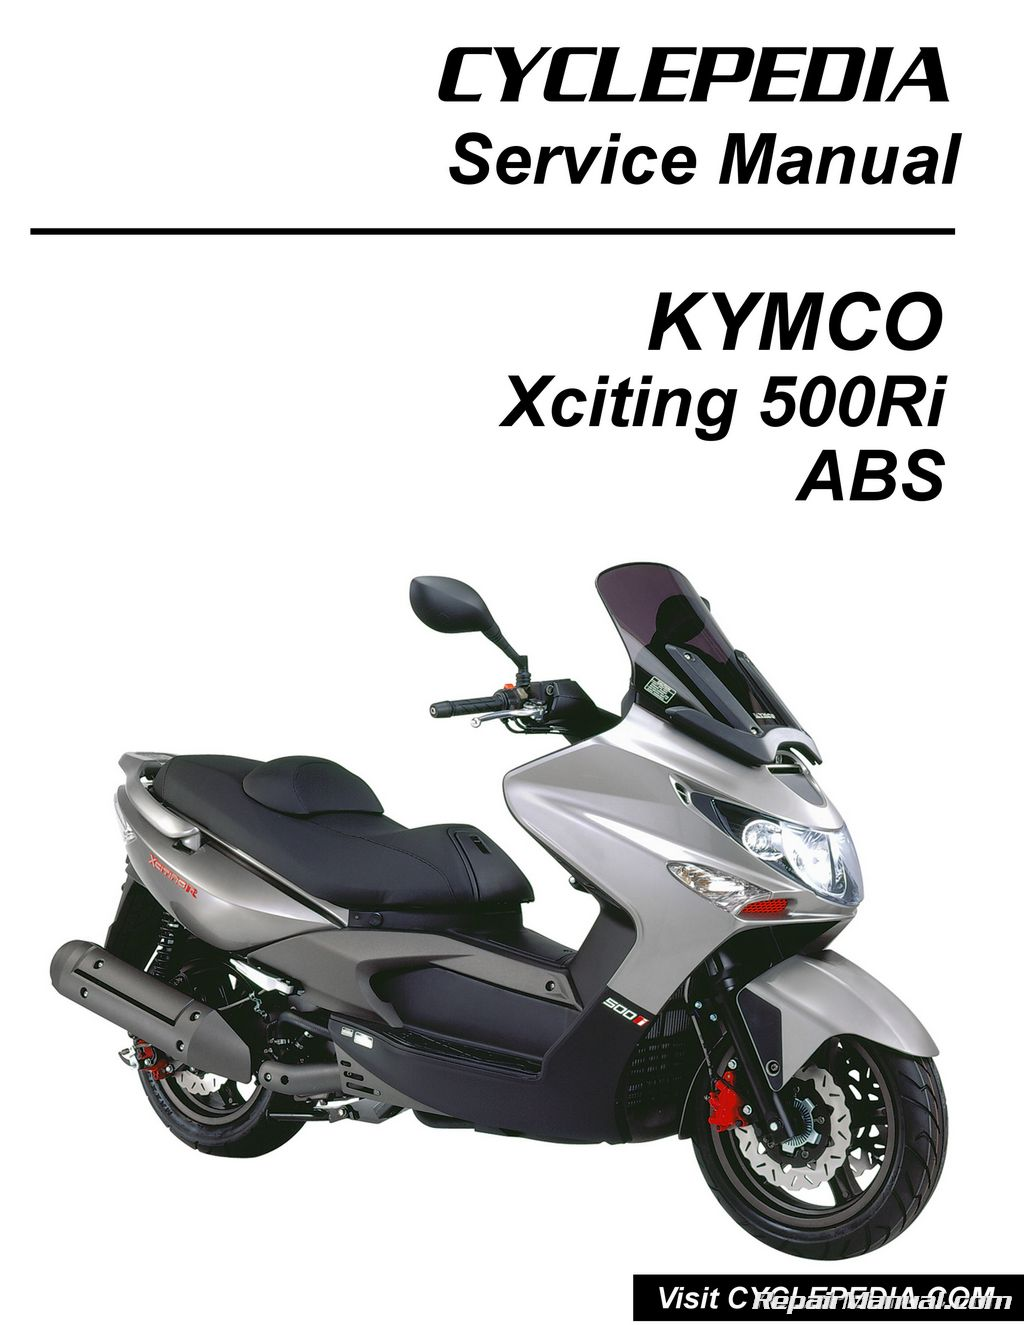 kymco xciting 500 owners manual